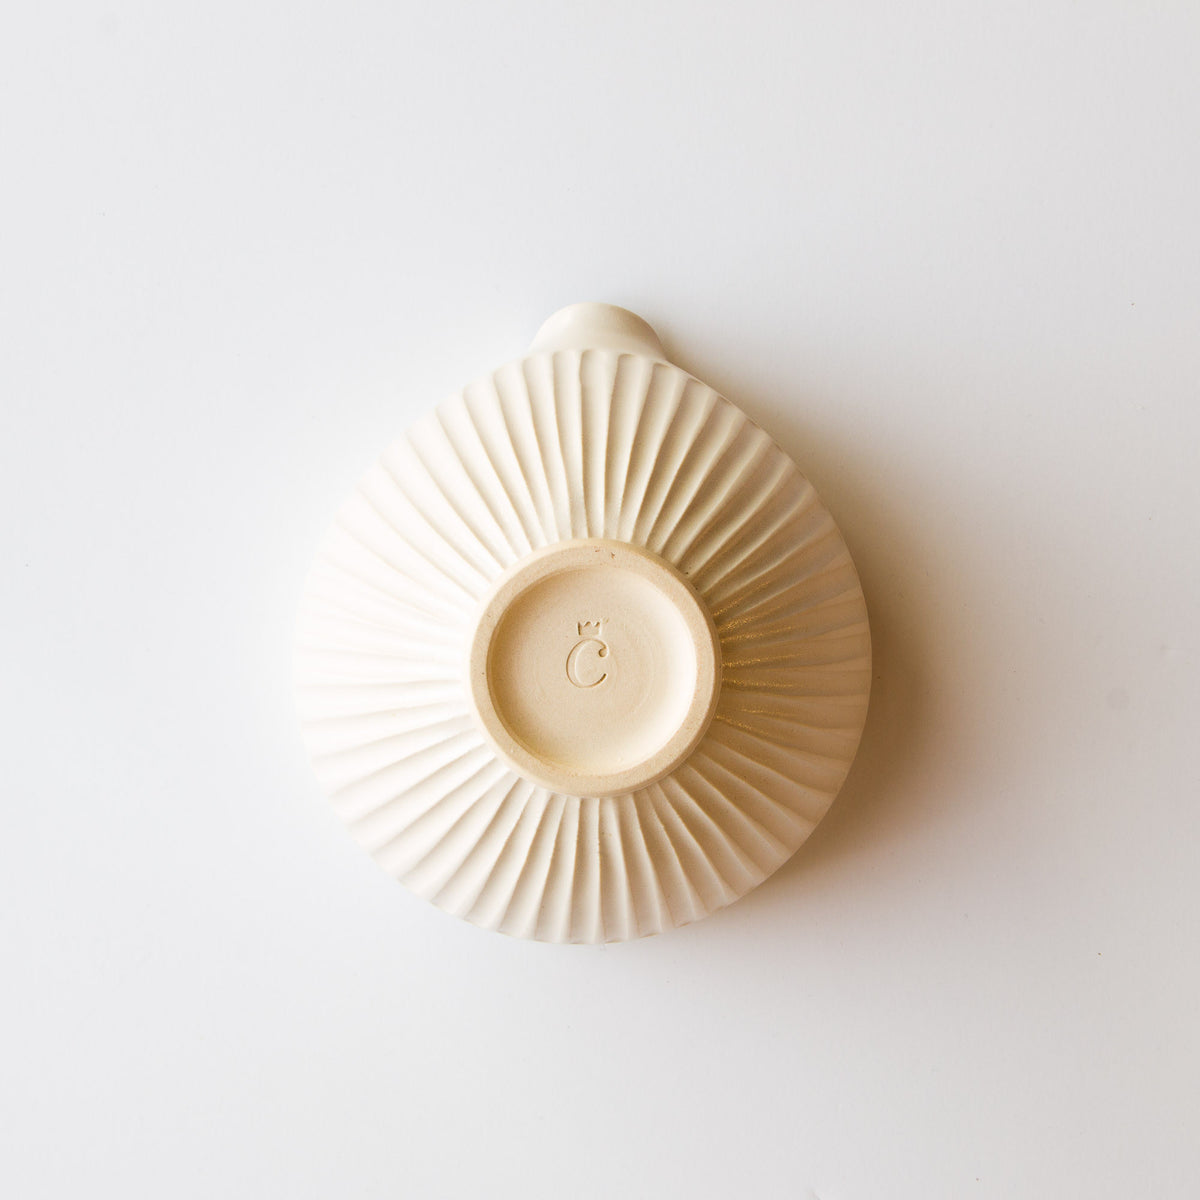 Bottom View - Off White - Hand Thrown Ceramic Mixing / Batter Bowl - Handmade in Canada - Chic & Basta